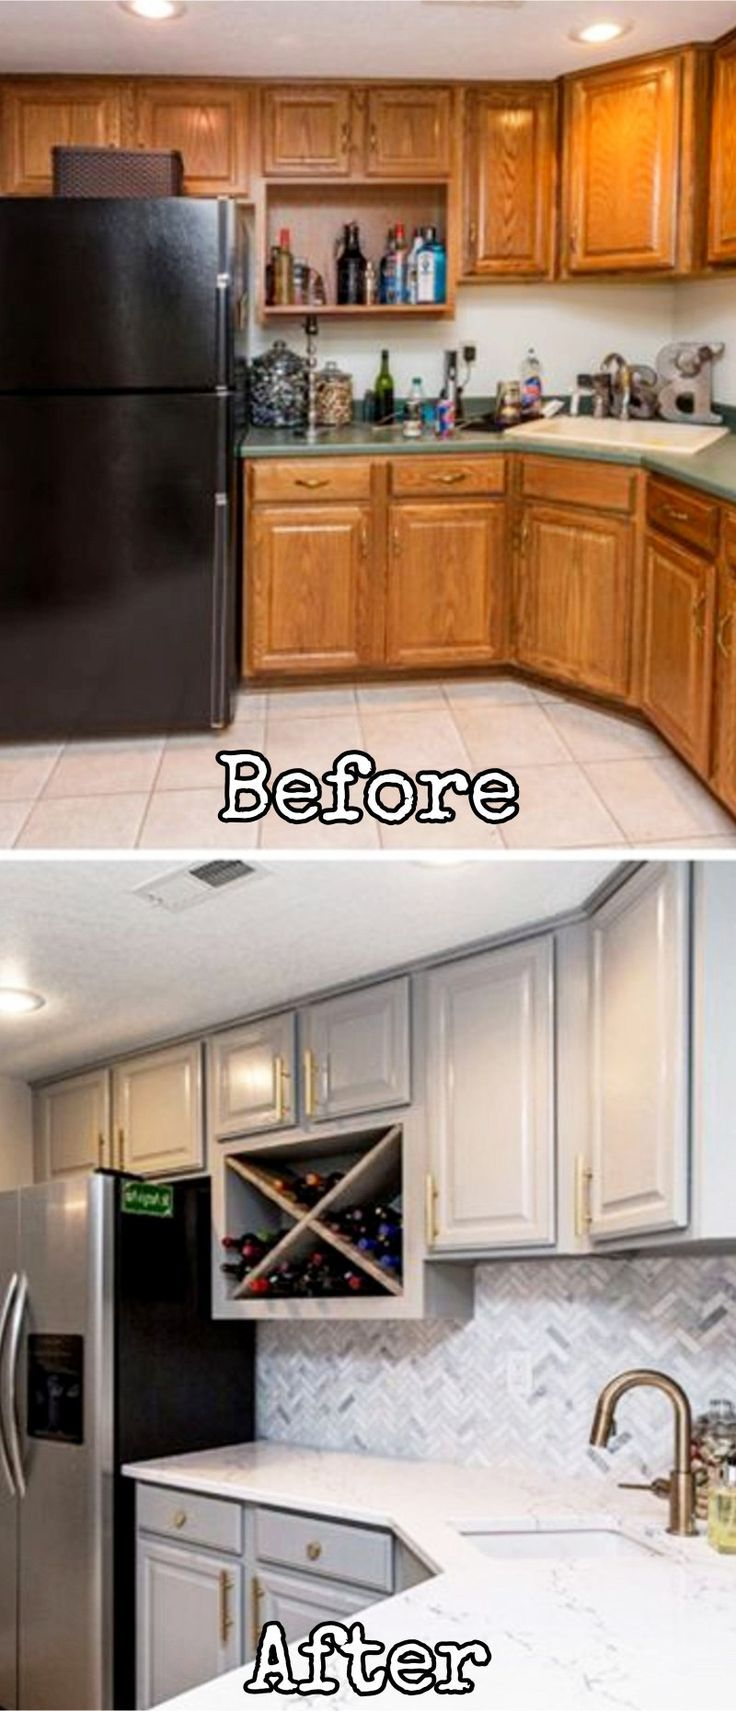 1960s Kitchen Remodel Before After: Small Kitchen Remodels Before And After PICTURES To Drool